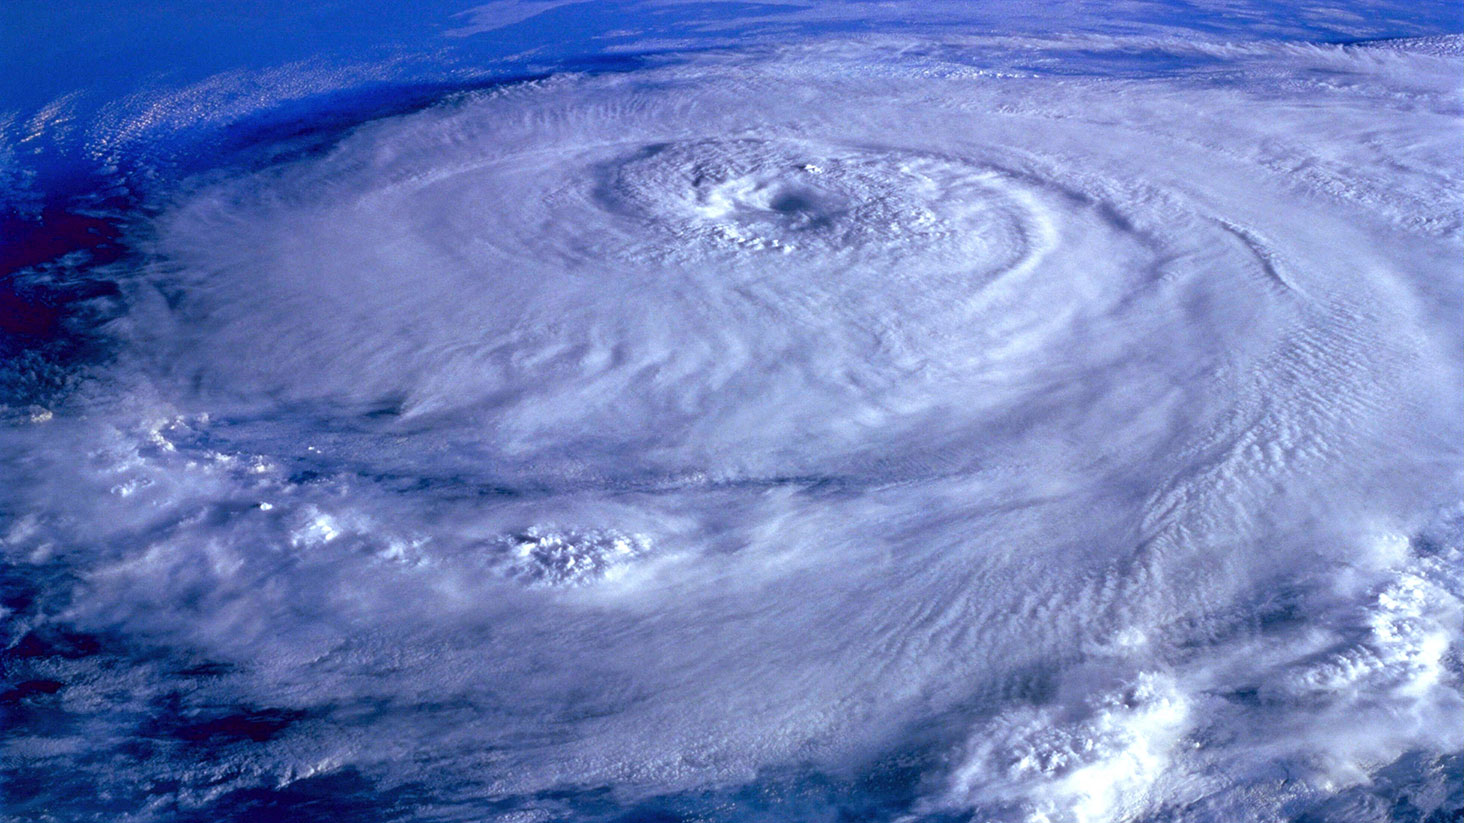 Install Generator Backup for Hurricanes